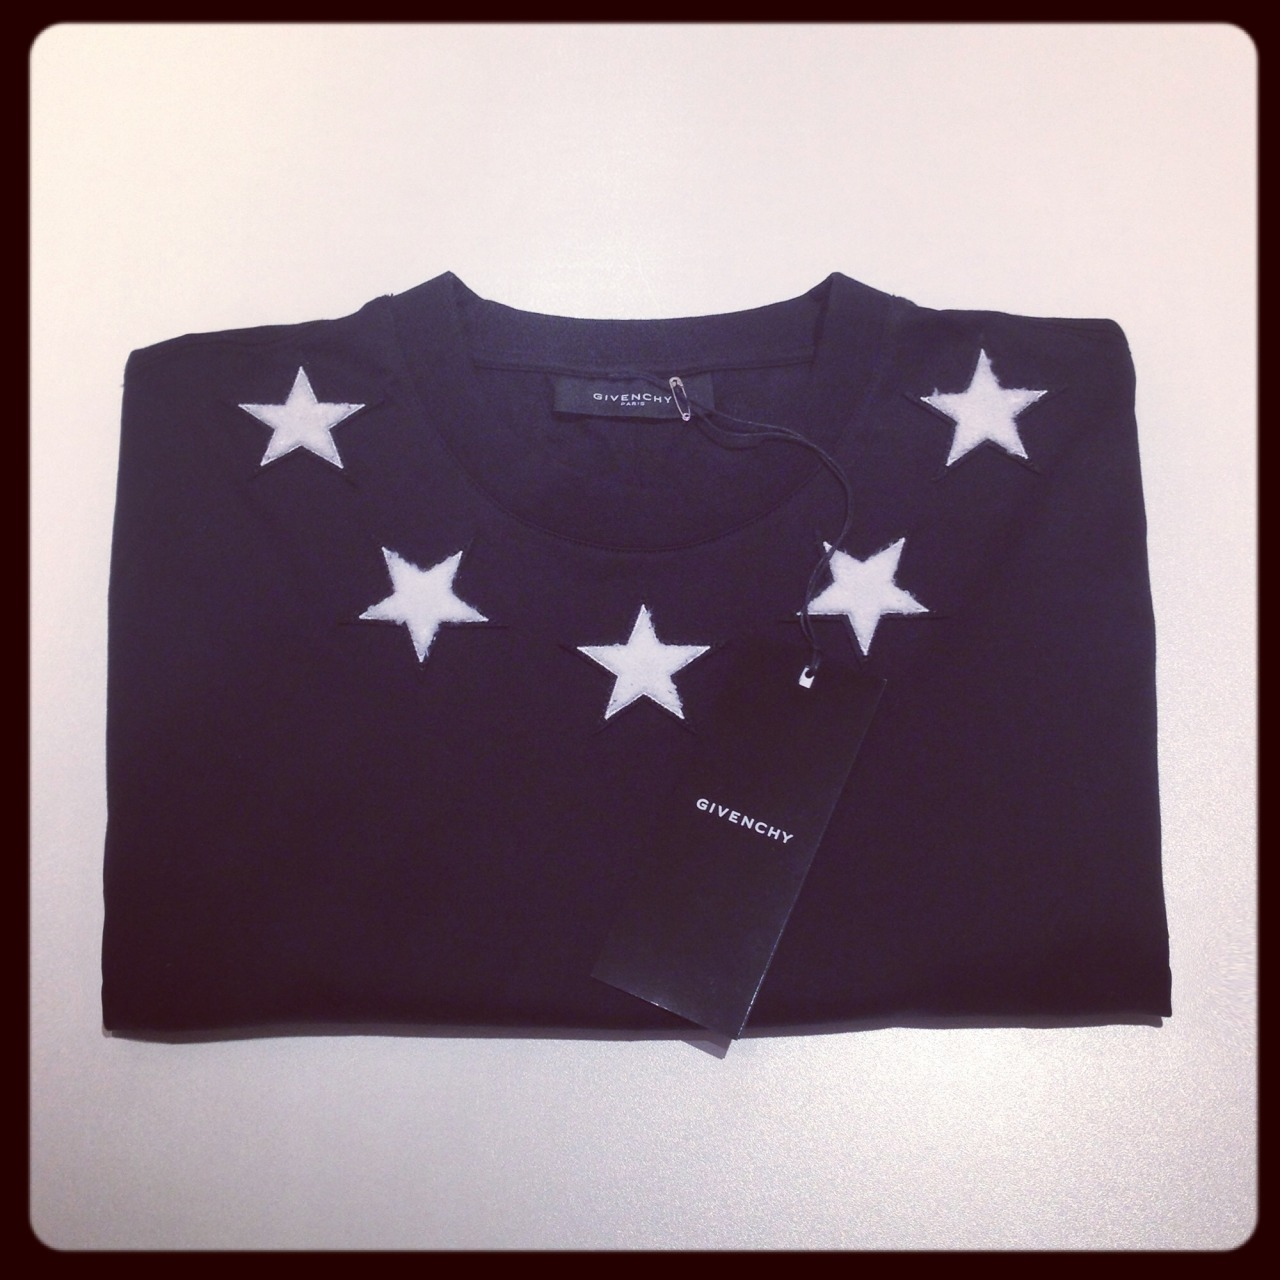 Our Sunday fix? Givenchy's star T-shirt. SHOP at: mr-p.co/fExXoK